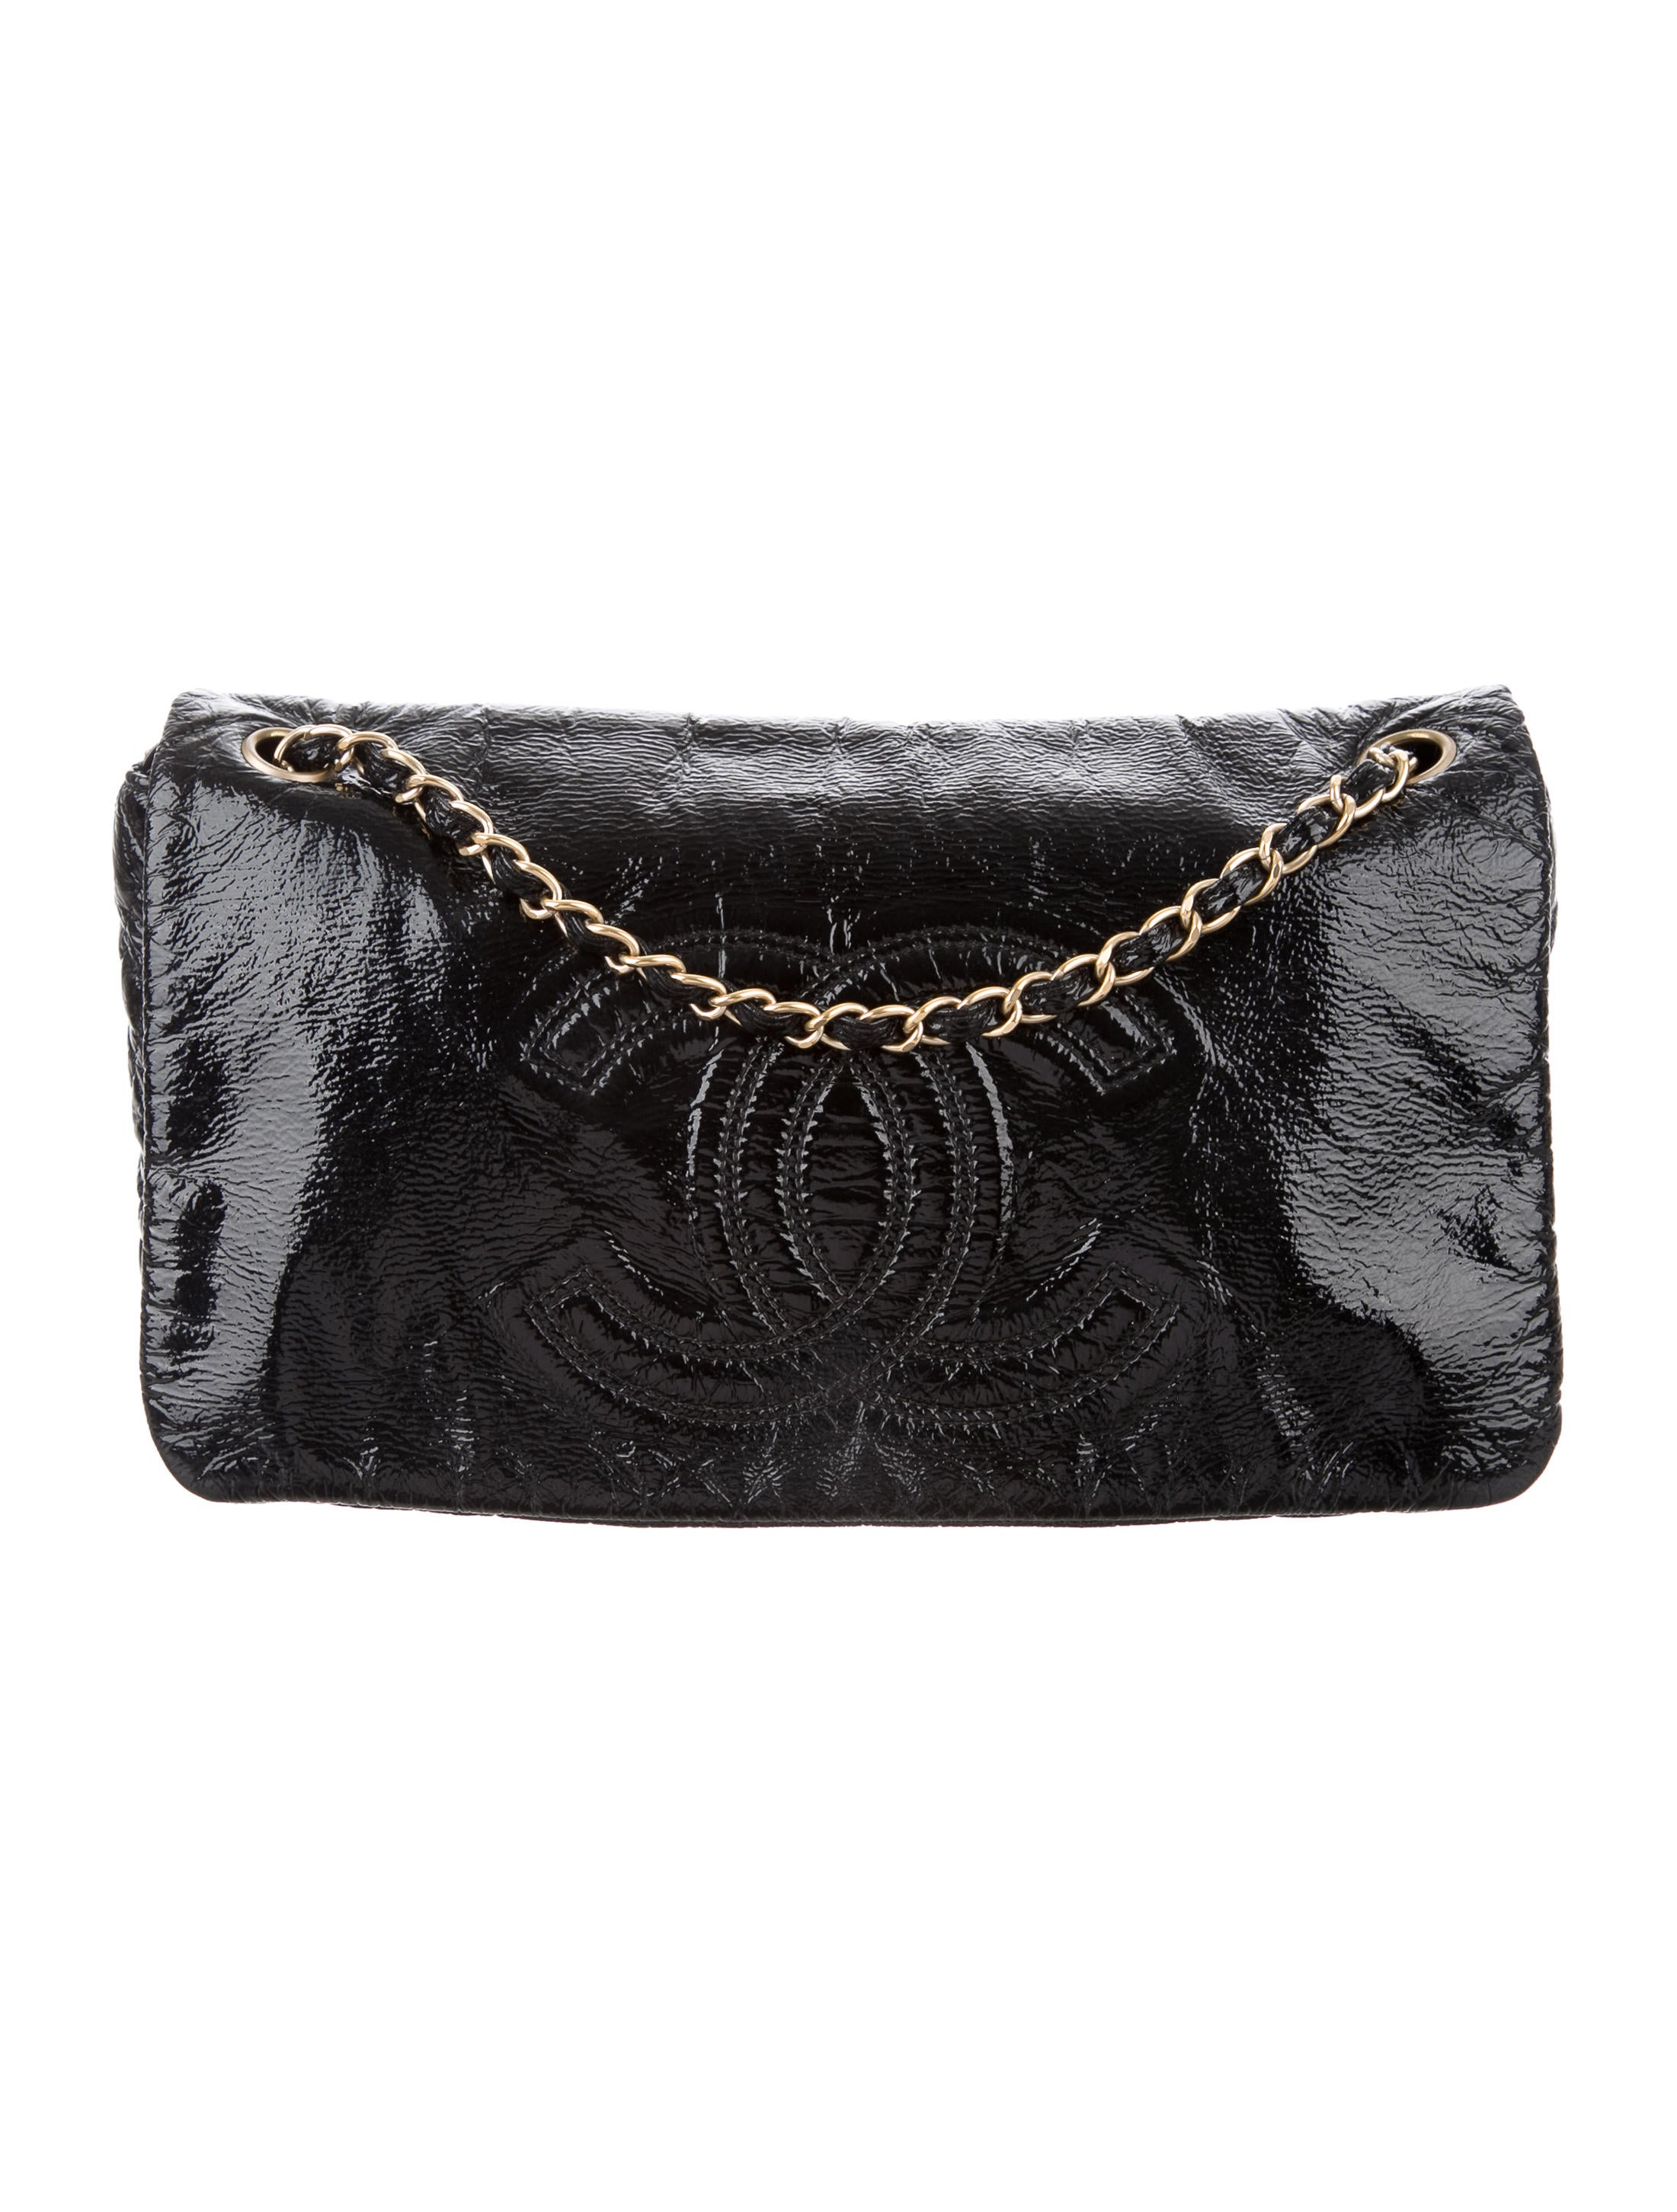 6a397b648d82 Chanel Small Bag With Chain | Stanford Center for Opportunity Policy ...